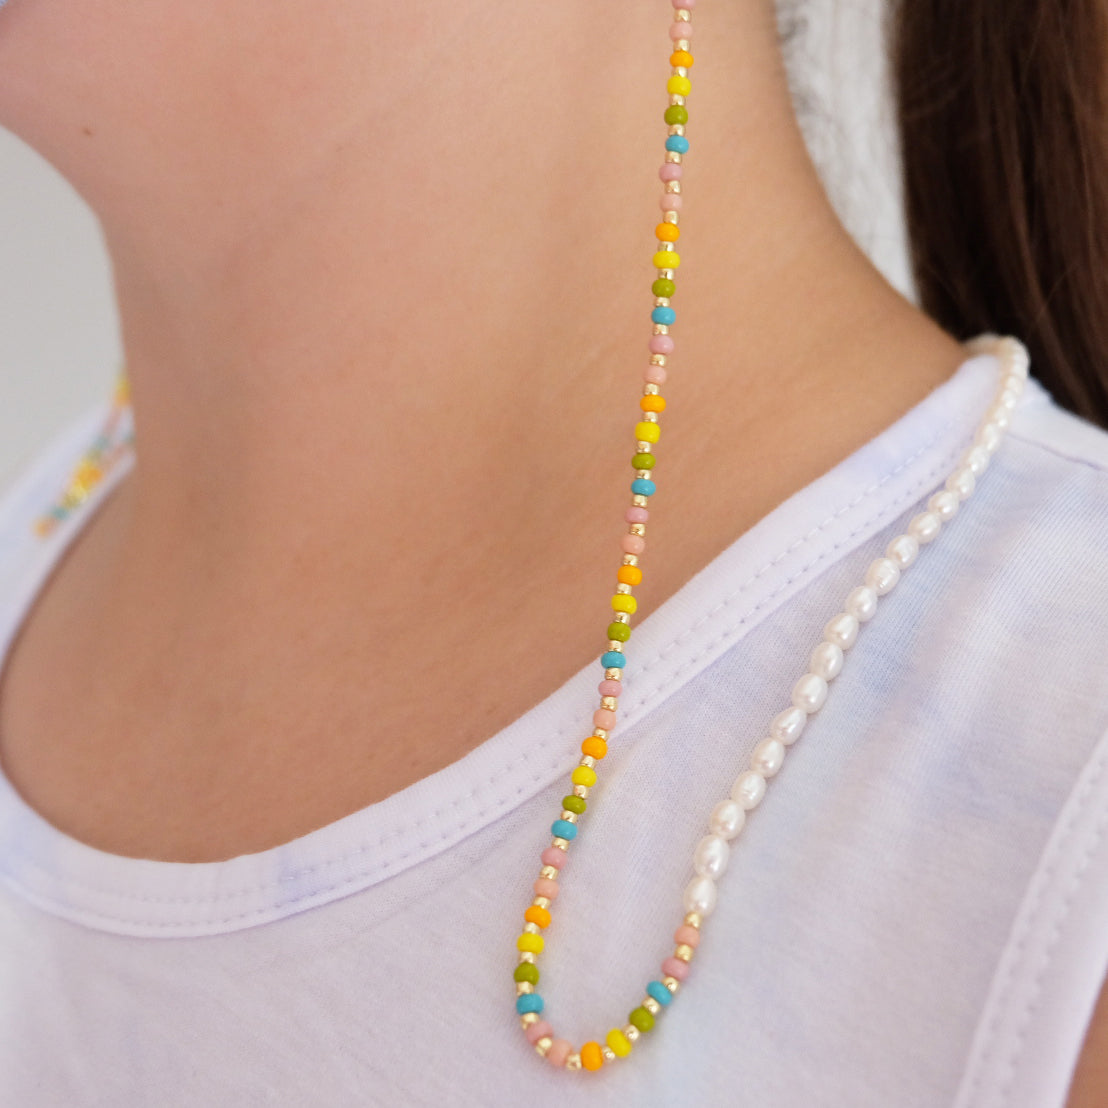 Rainbow Beaded Mask Chain - Daily Disco